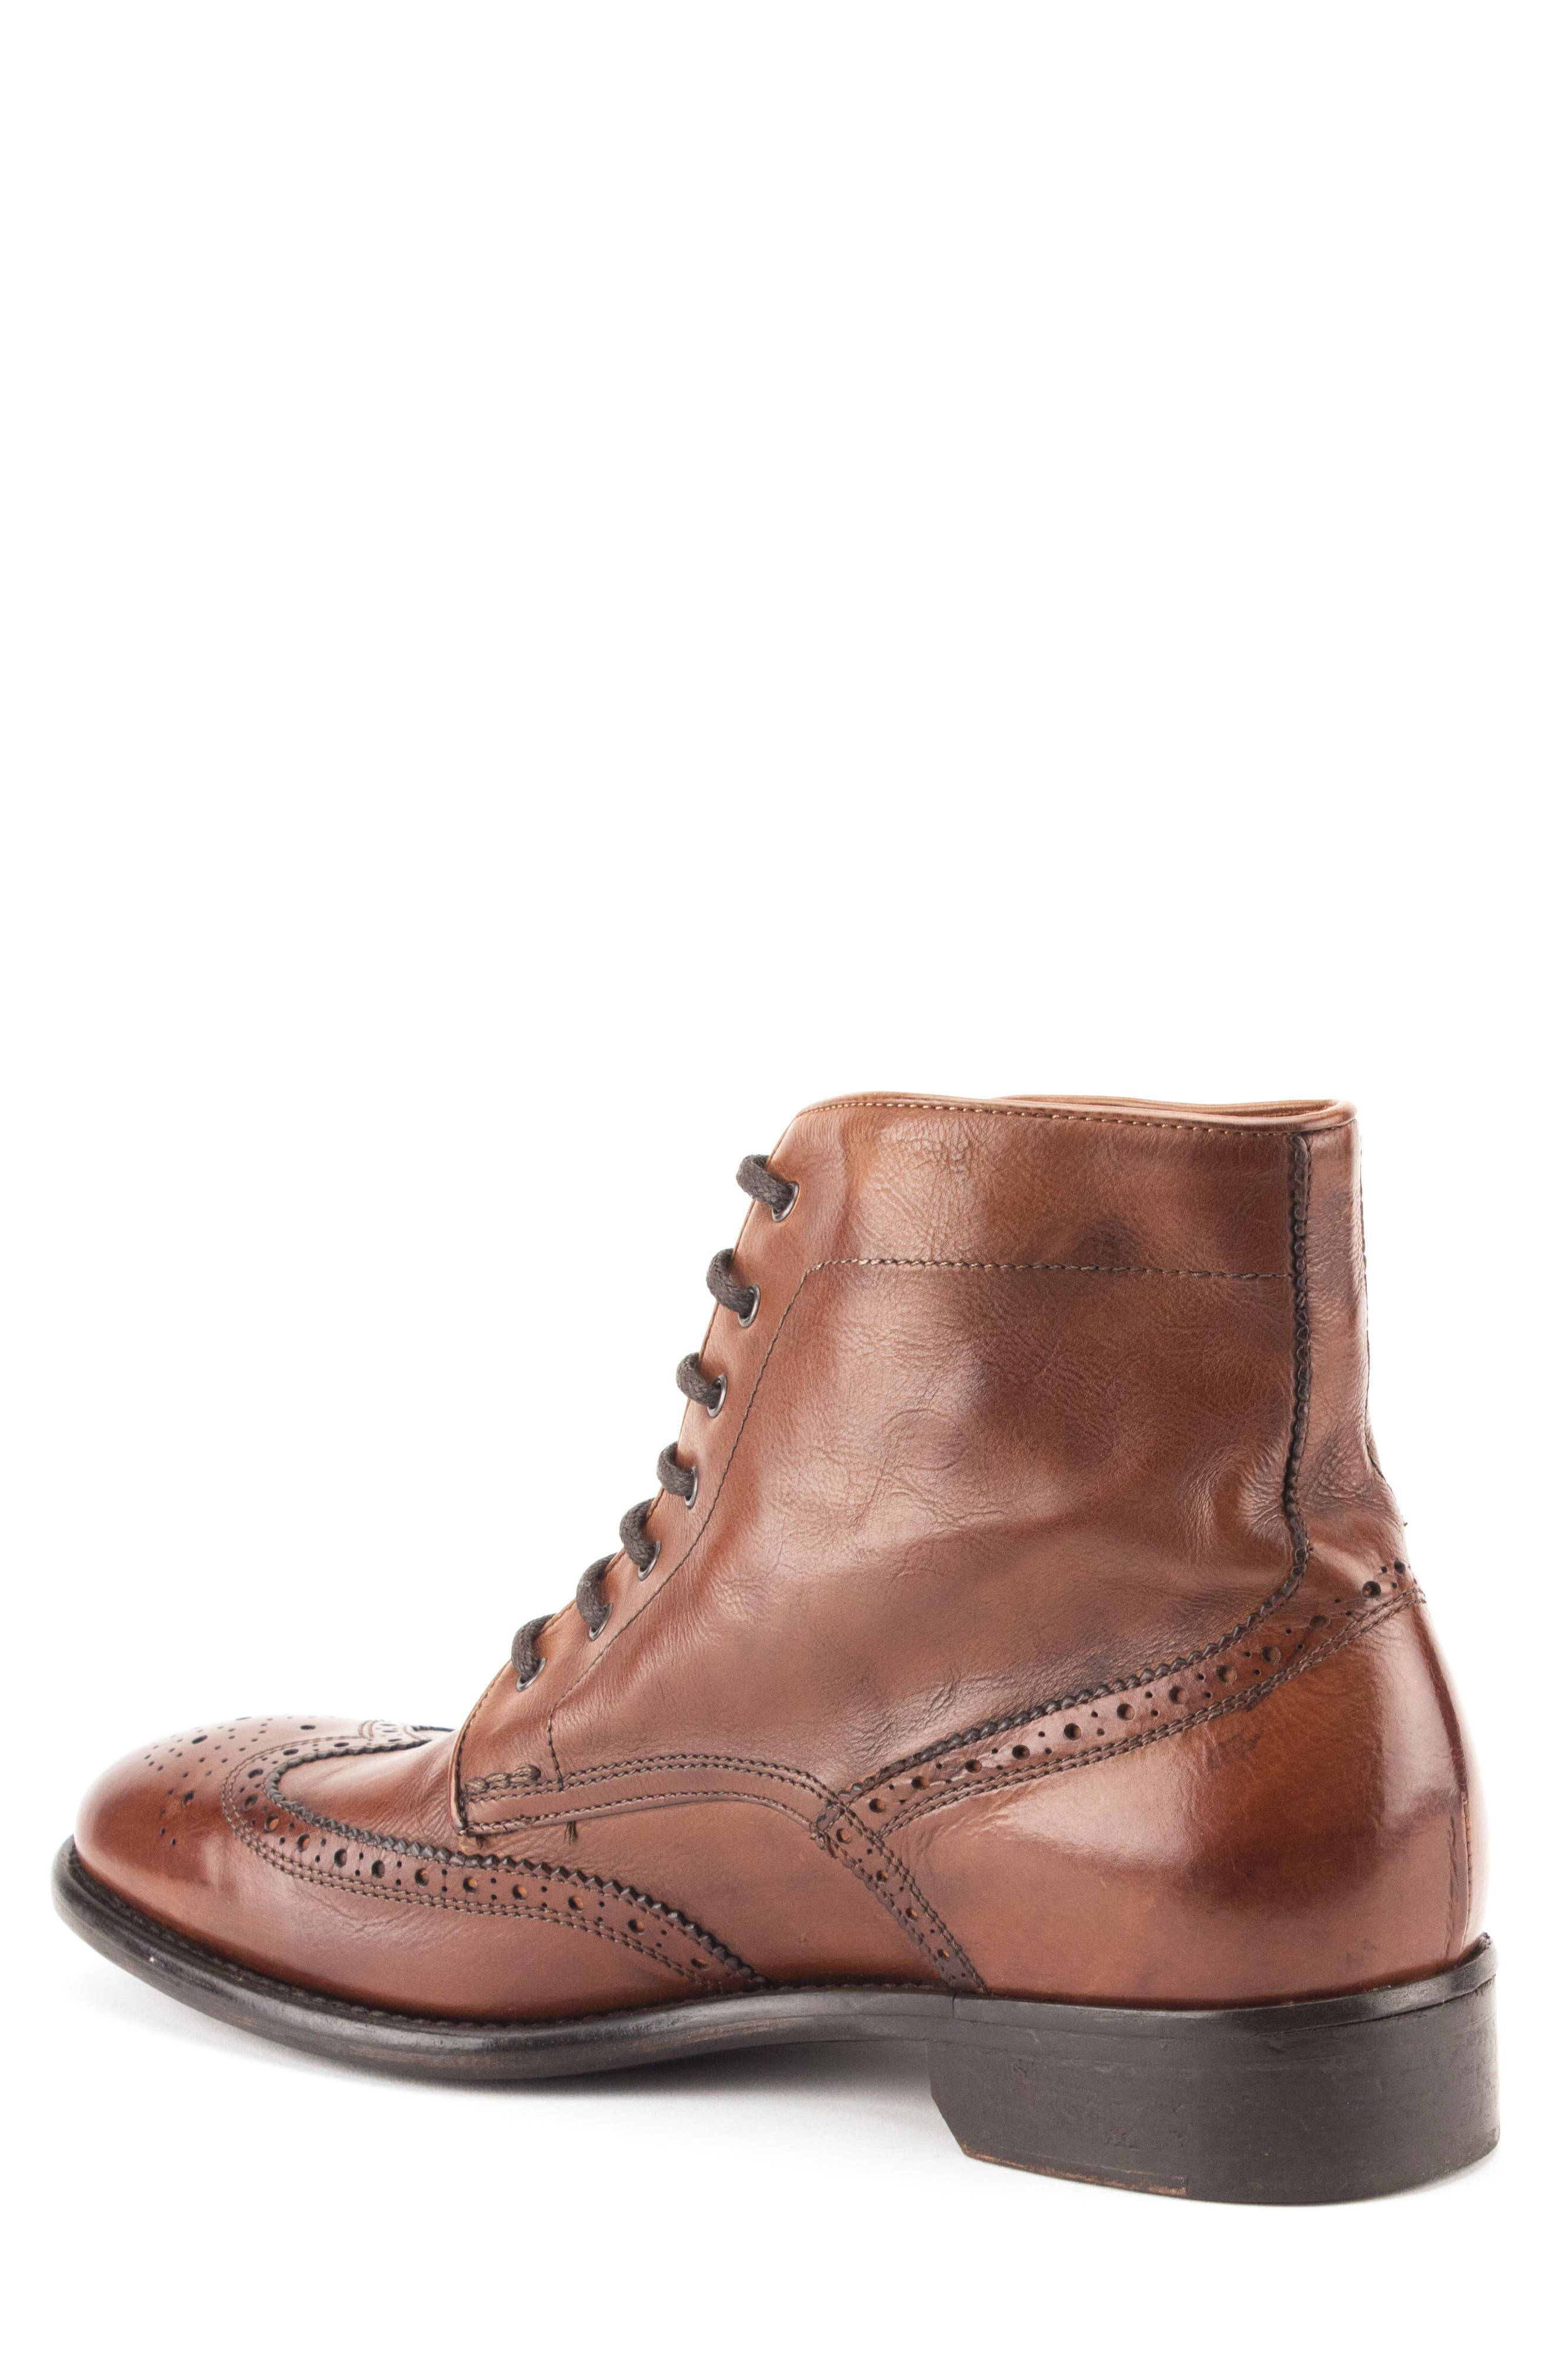 Maxfield Wingtip Boot,                             Alternate thumbnail 2, color,                             Cognac Leather